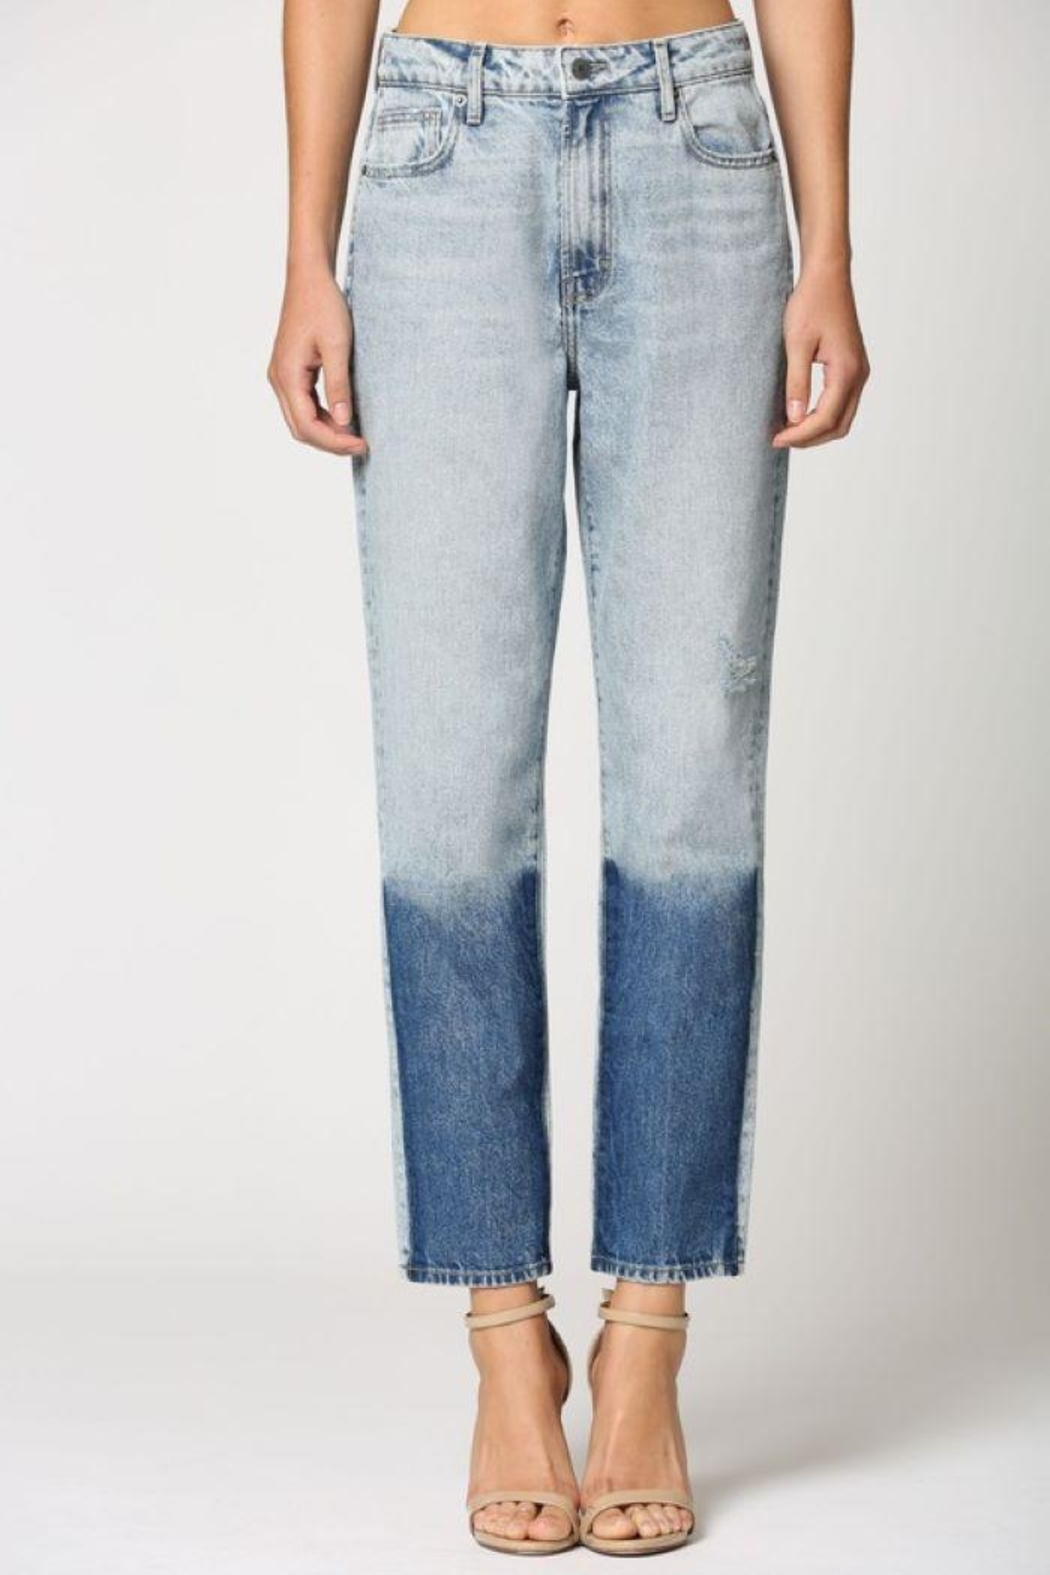 Hidden Jeans Light Wash Two Tone Straight Jeans - Side Cropped Image